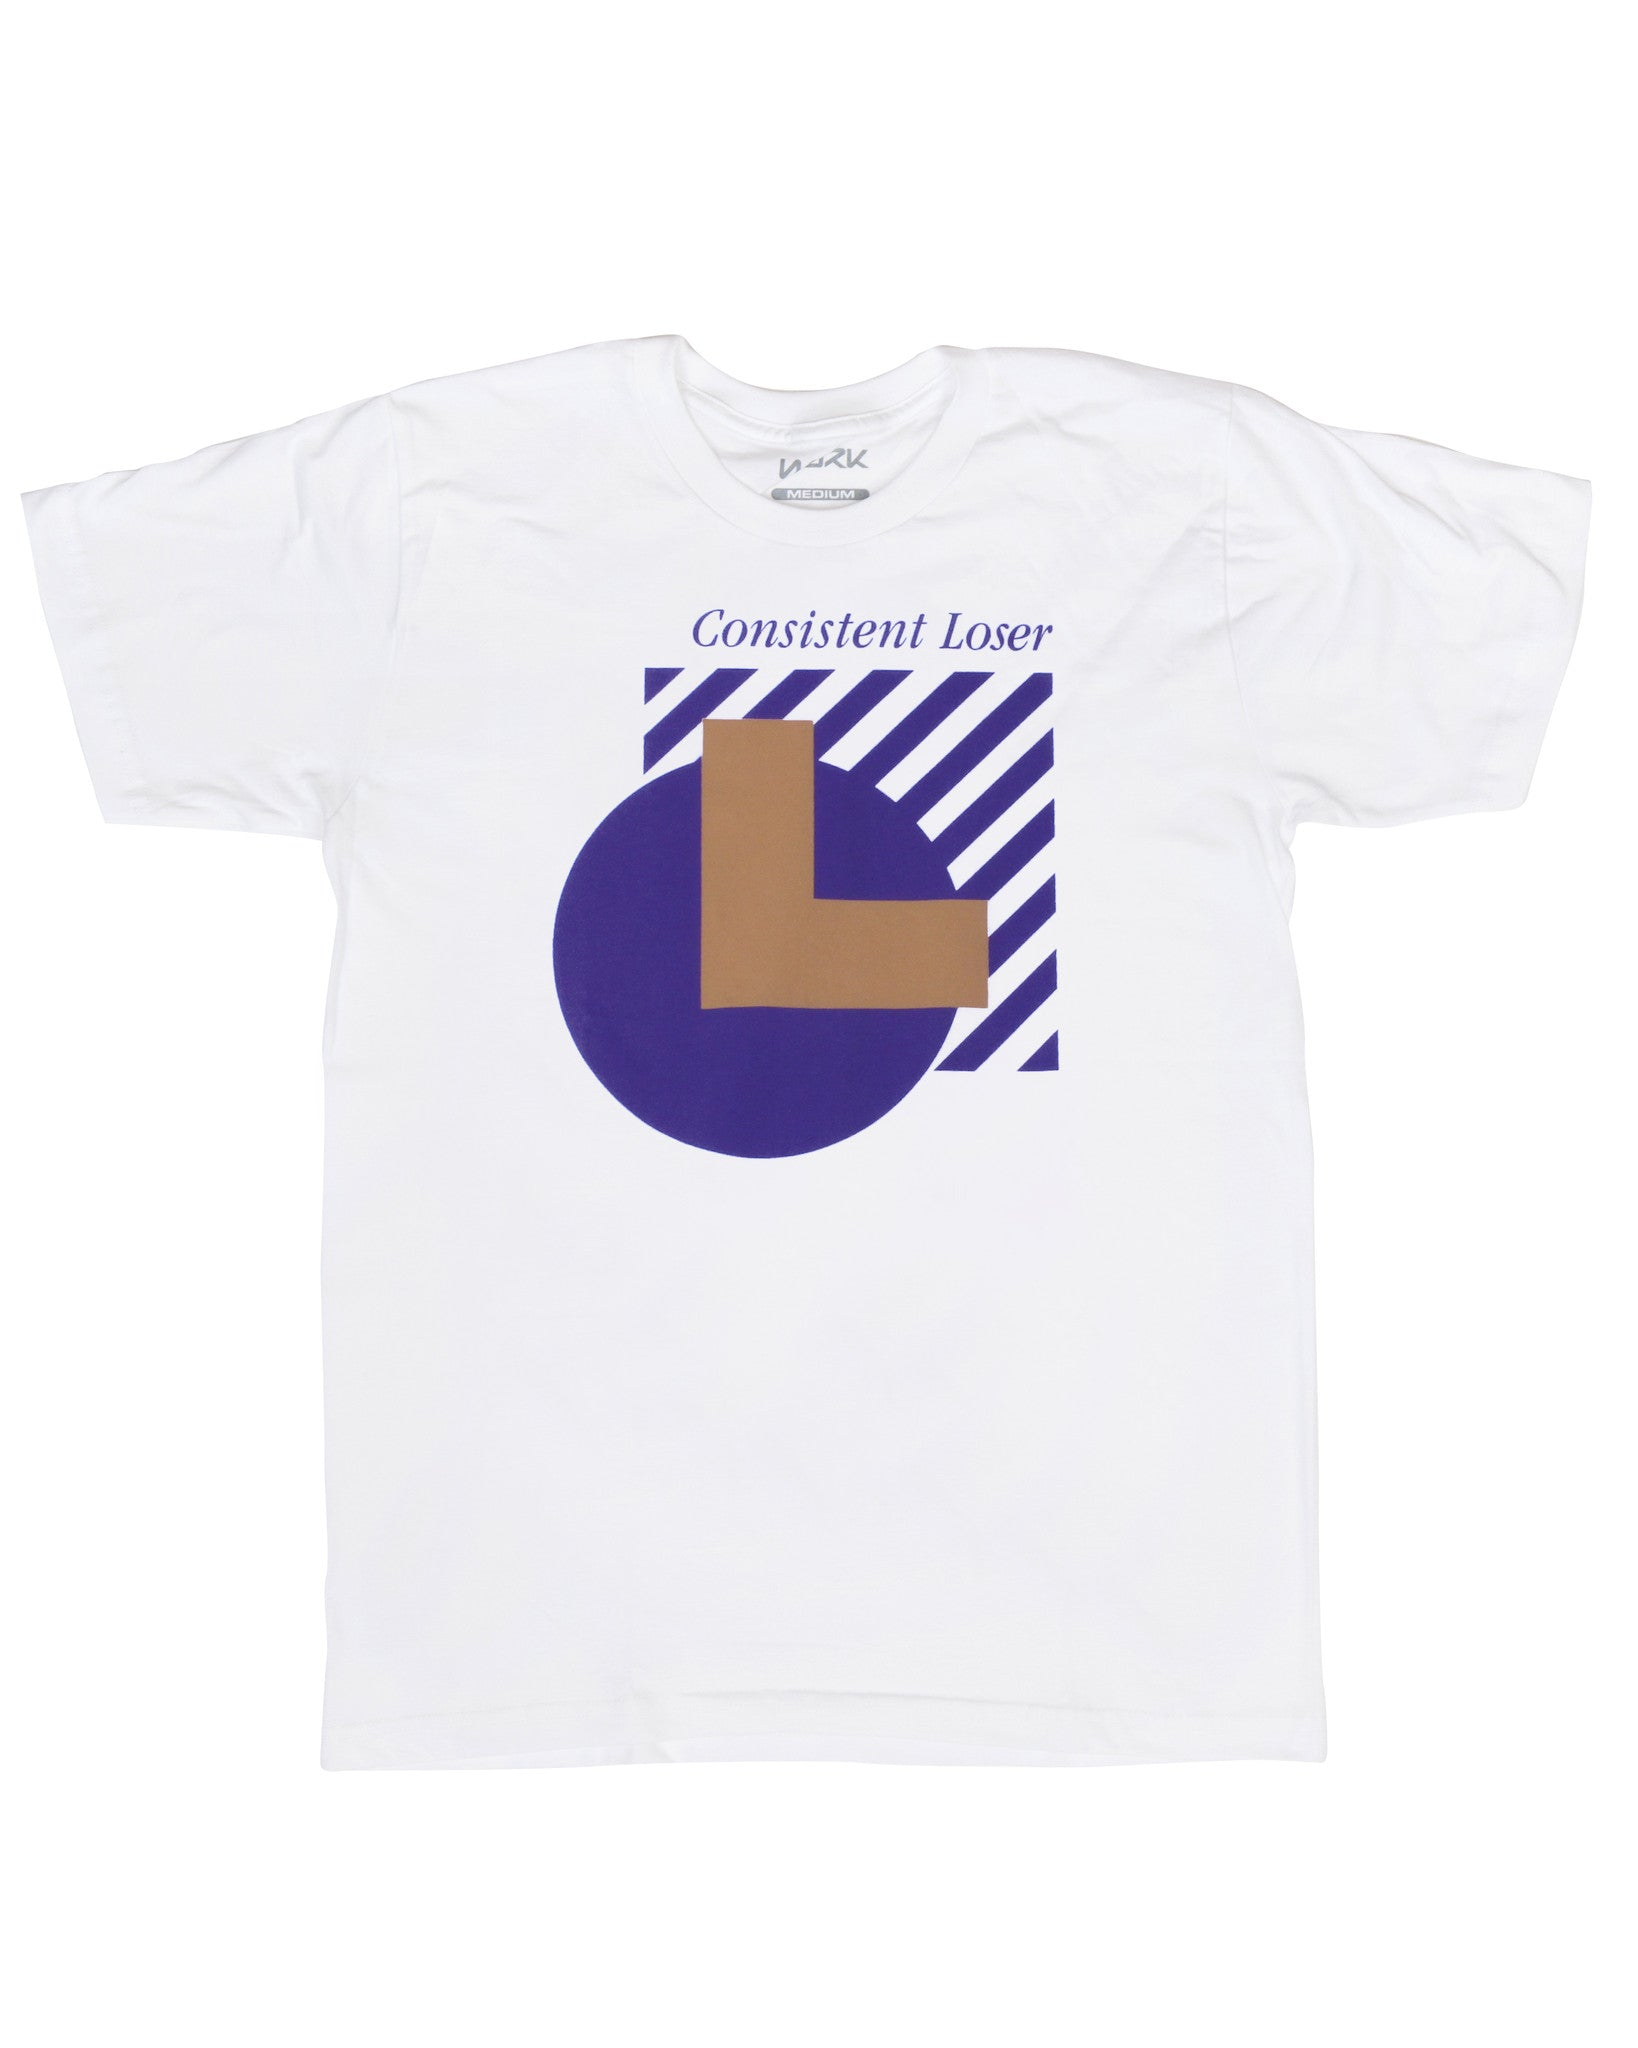 """Consistent Loser"" ART by MOTB front White shirt"